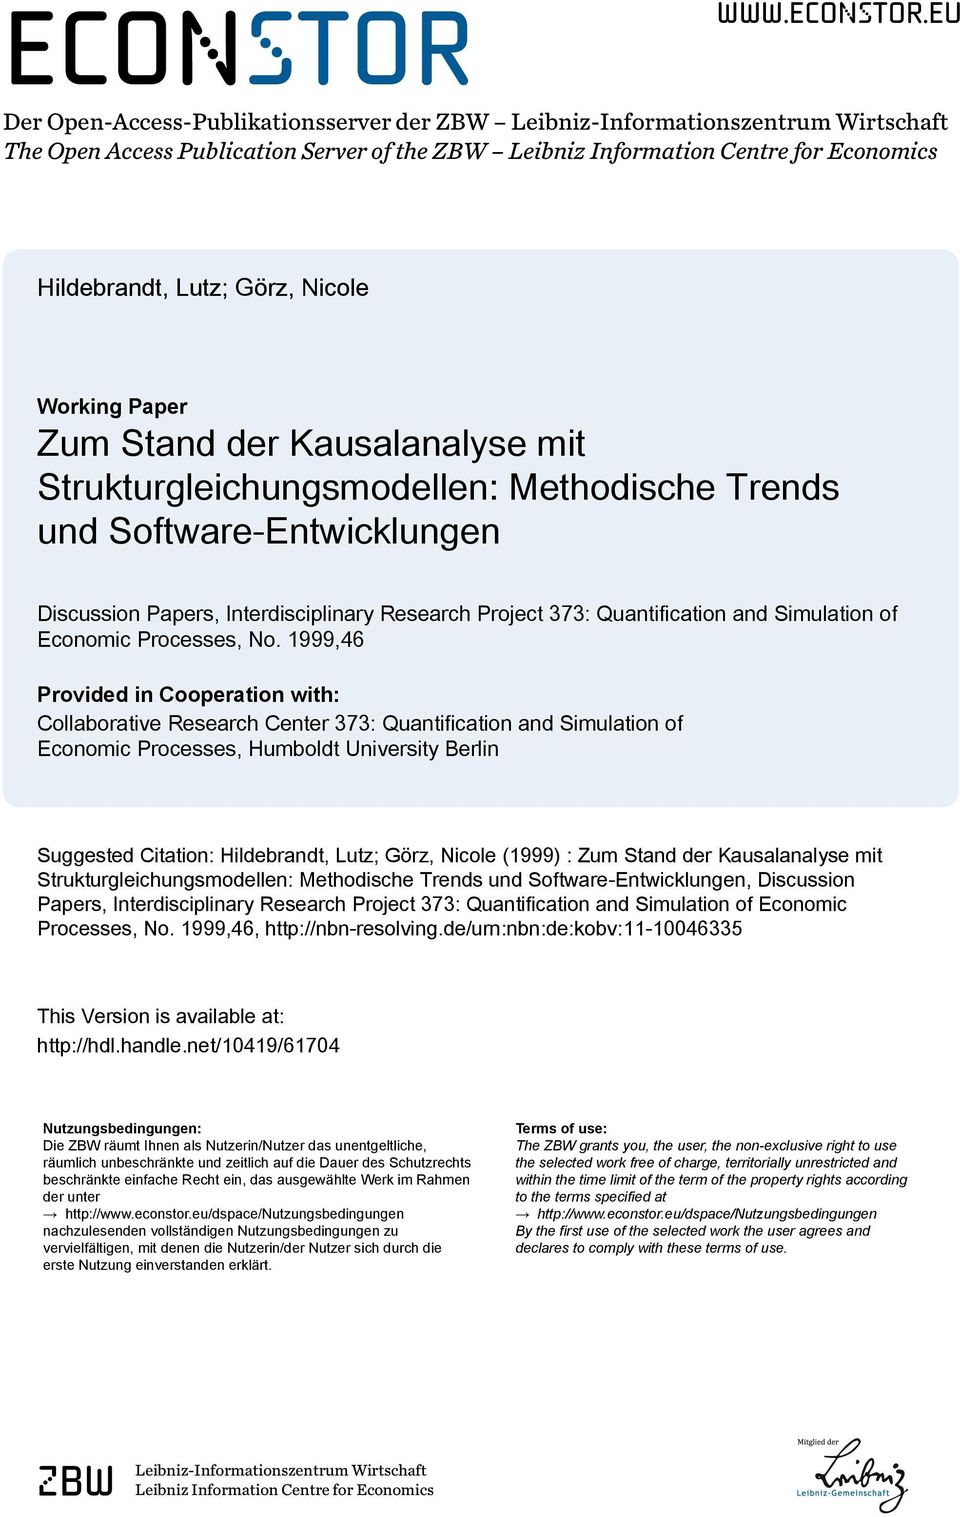 eu Der Open-Access-Publikationsserver der ZBW Leibniz-Informationszentrum Wirtschaft The Open Access Publication Server of the ZBW Leibniz Information Centre for Economics Hildebrandt, Lutz; Görz,